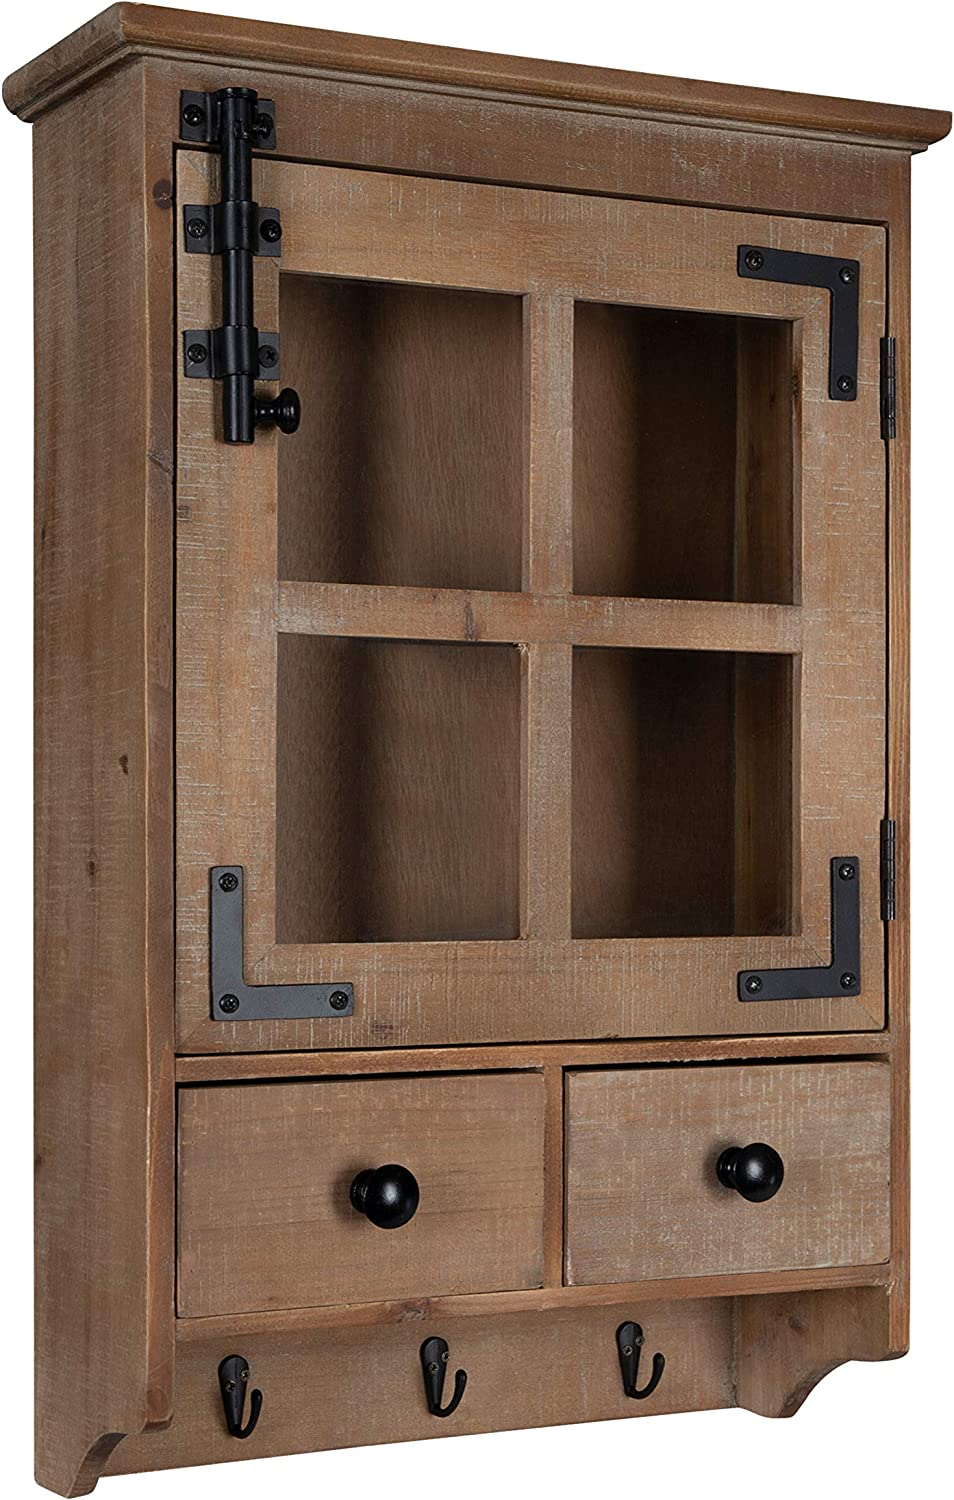 Kate and Laurel Hutchins Farmhouse Wood Wall Cabinet with Window Pane Glass Door and 2 Storage Drawers, Rustic Brown